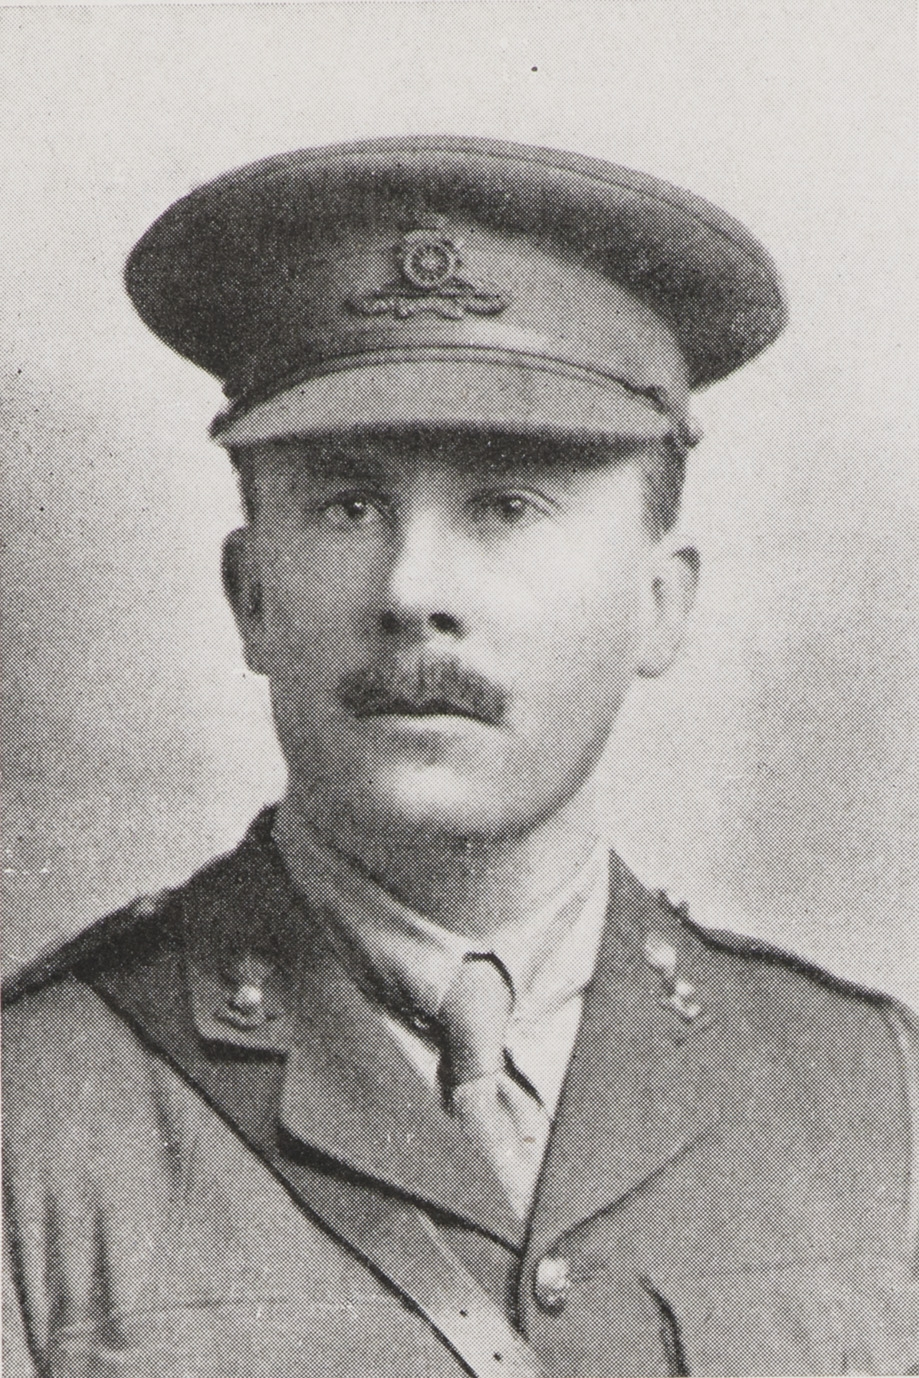 Black and white portrait of man in uniform with moustache.